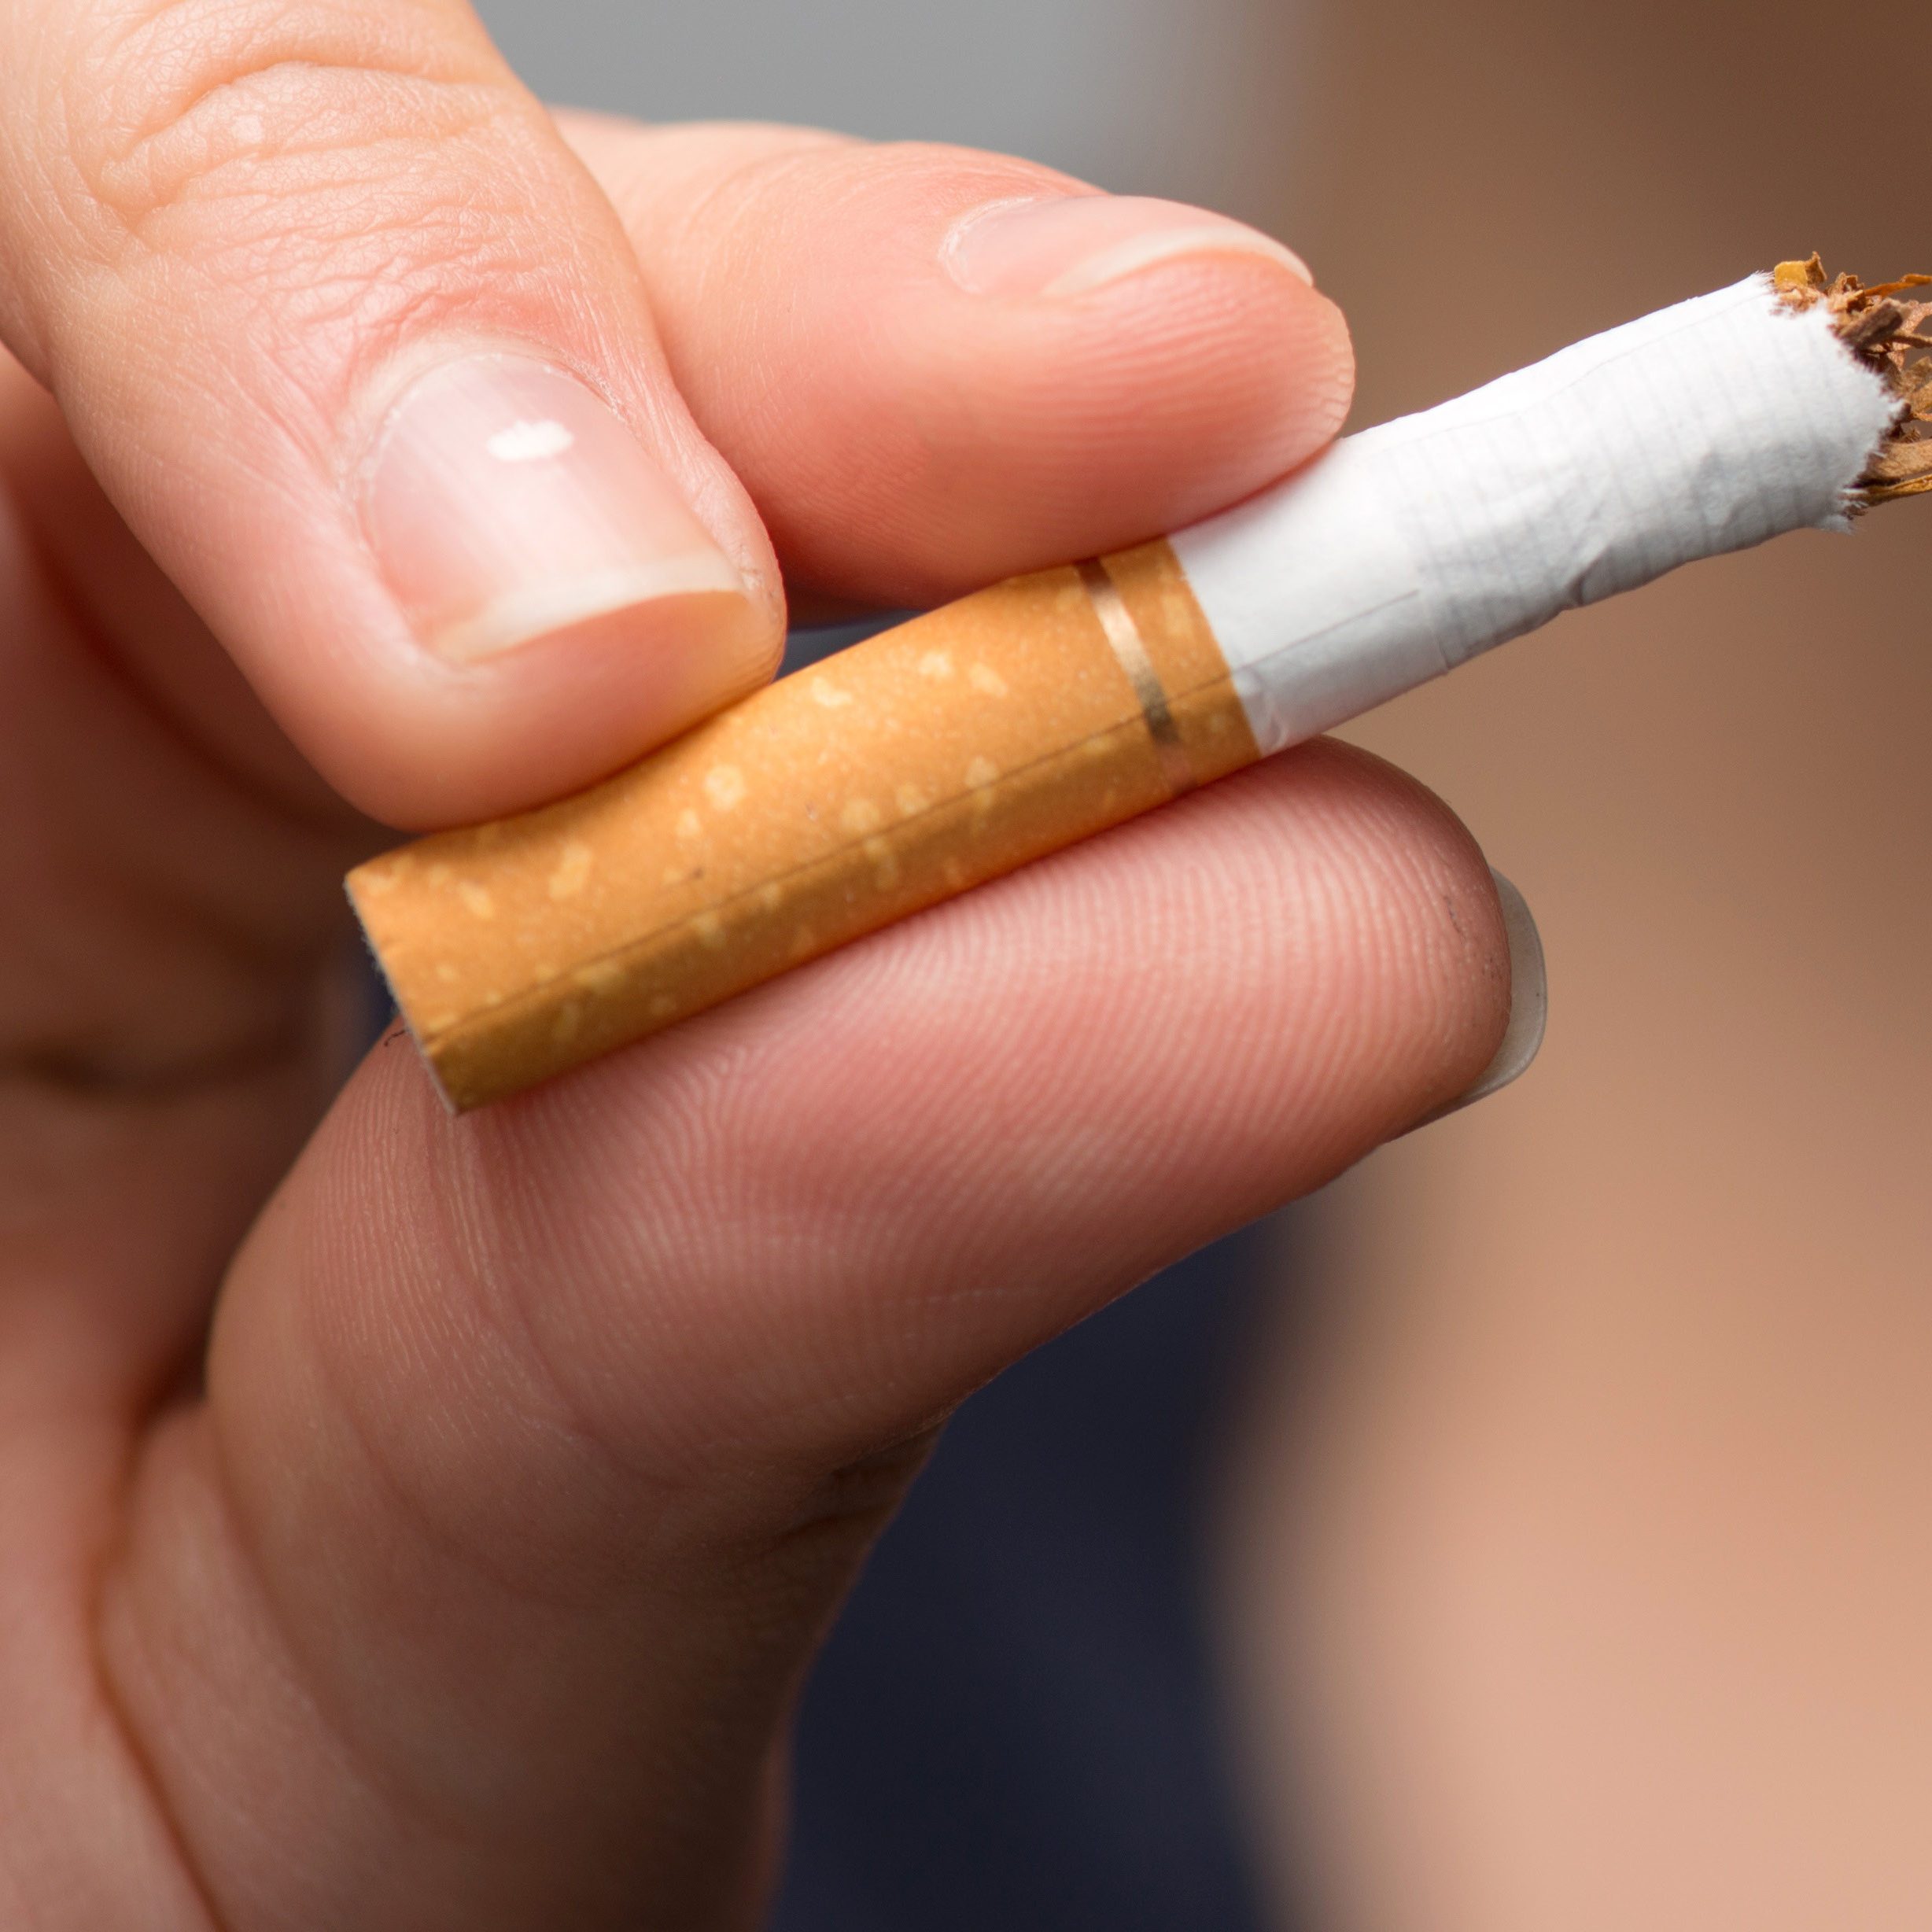 Quitting Smoking Is Possible and Reduces Cancer Risk